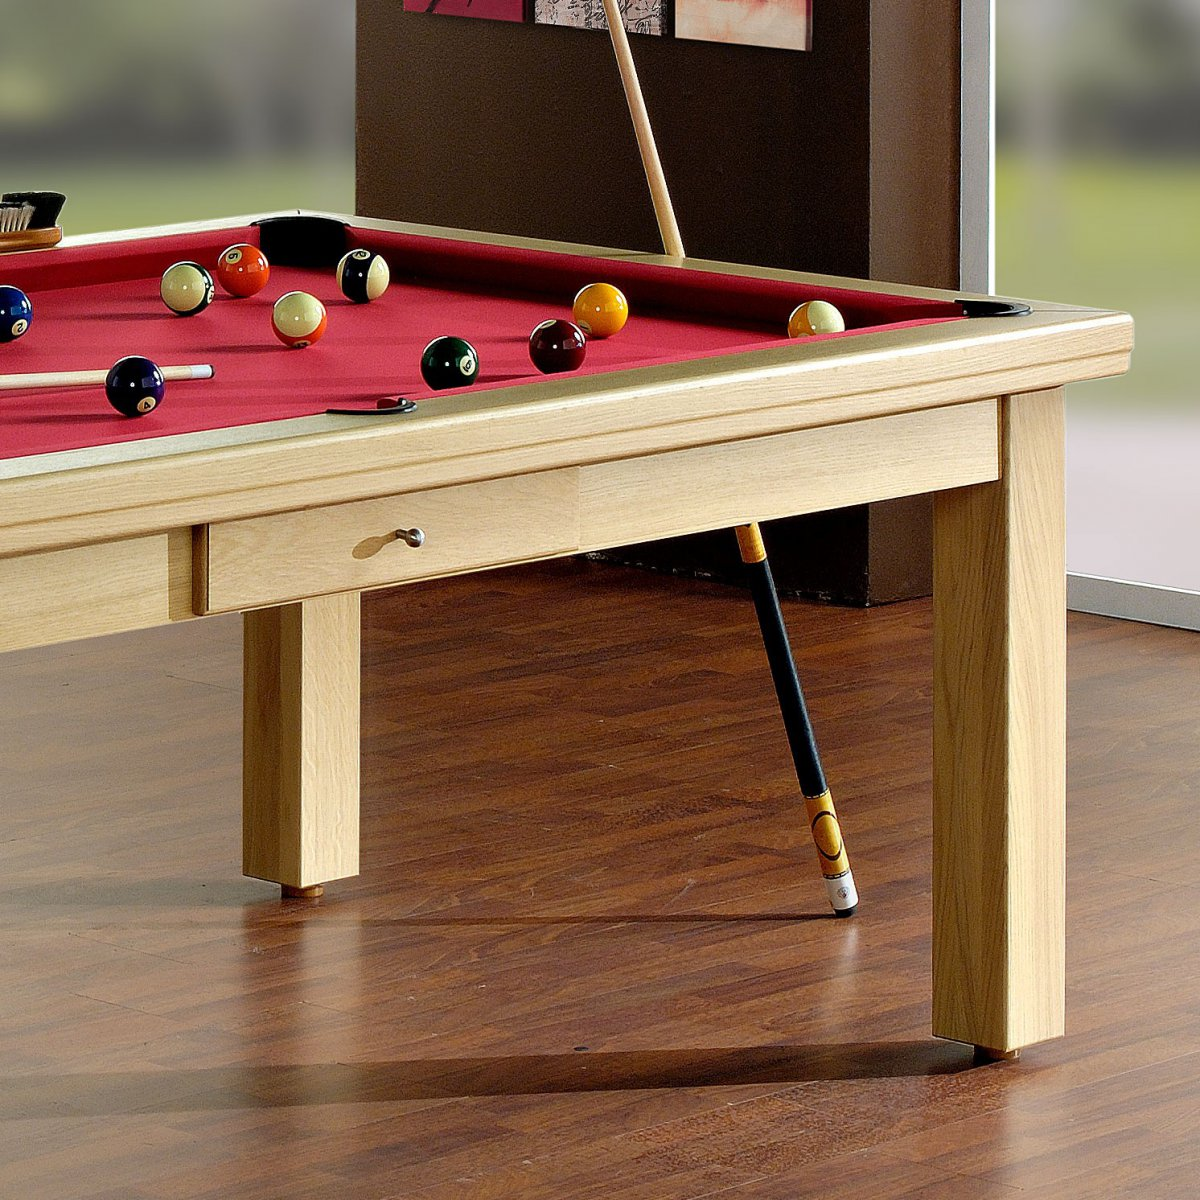 Table manger billard mod le sydney prestige - Billard transformable en table ...